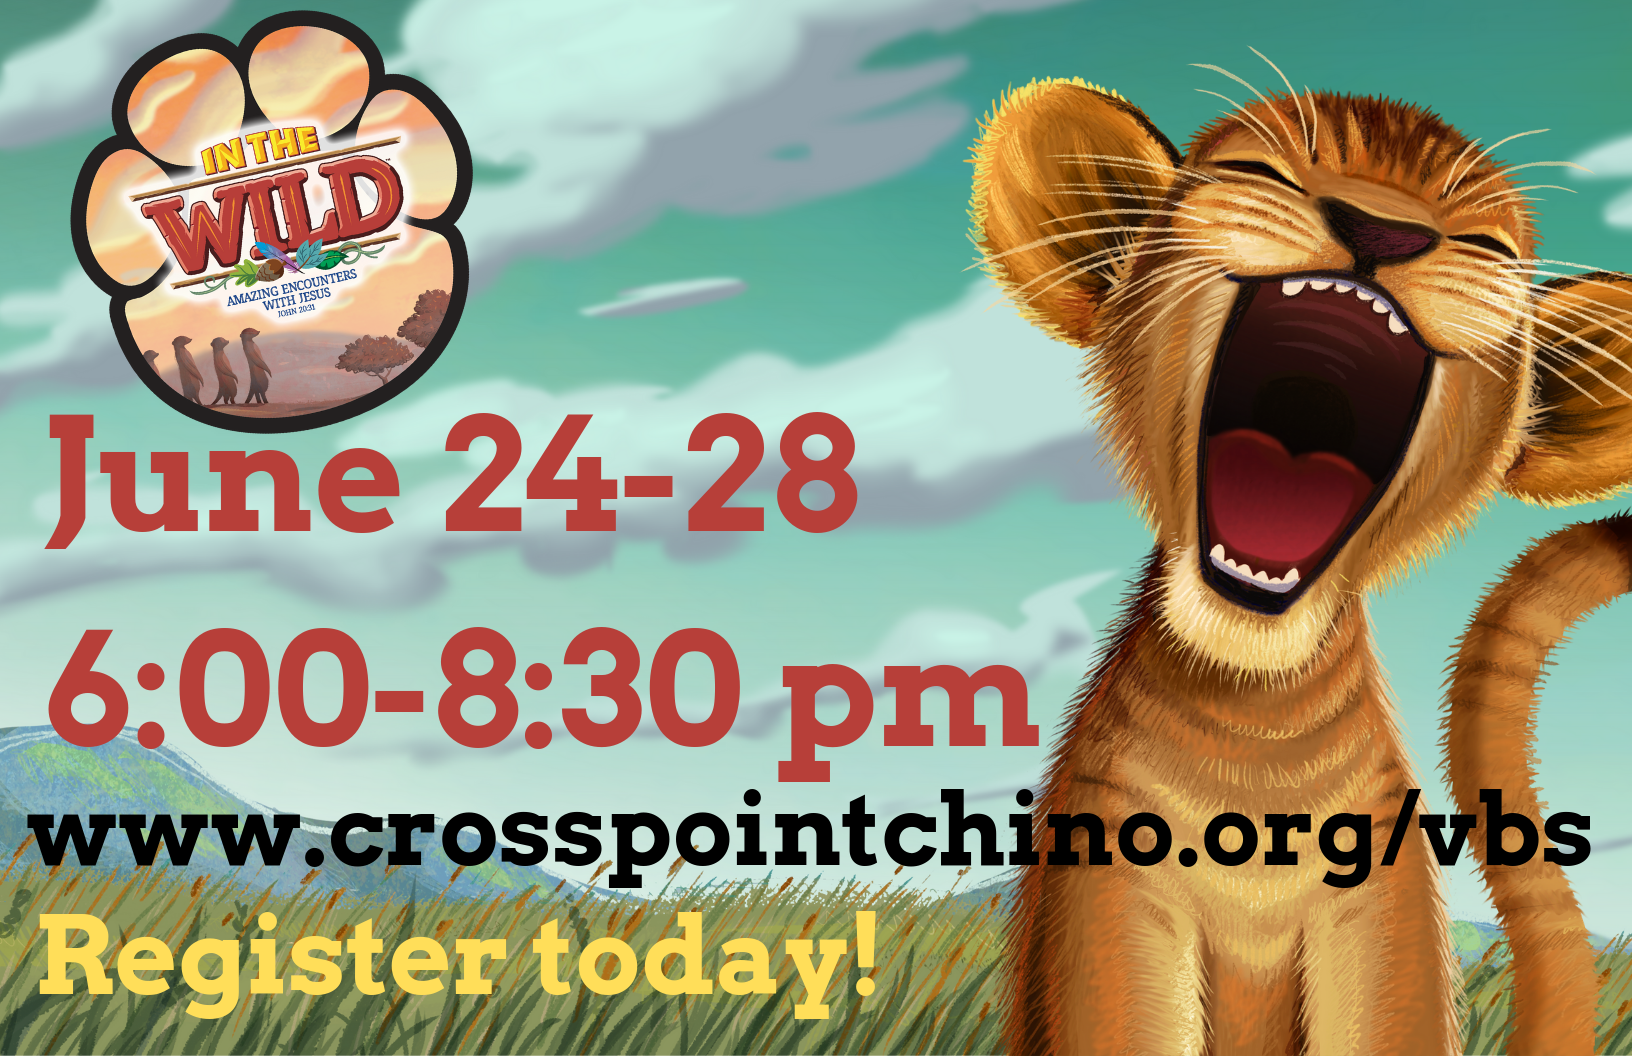 VBS 11x17 register today.png